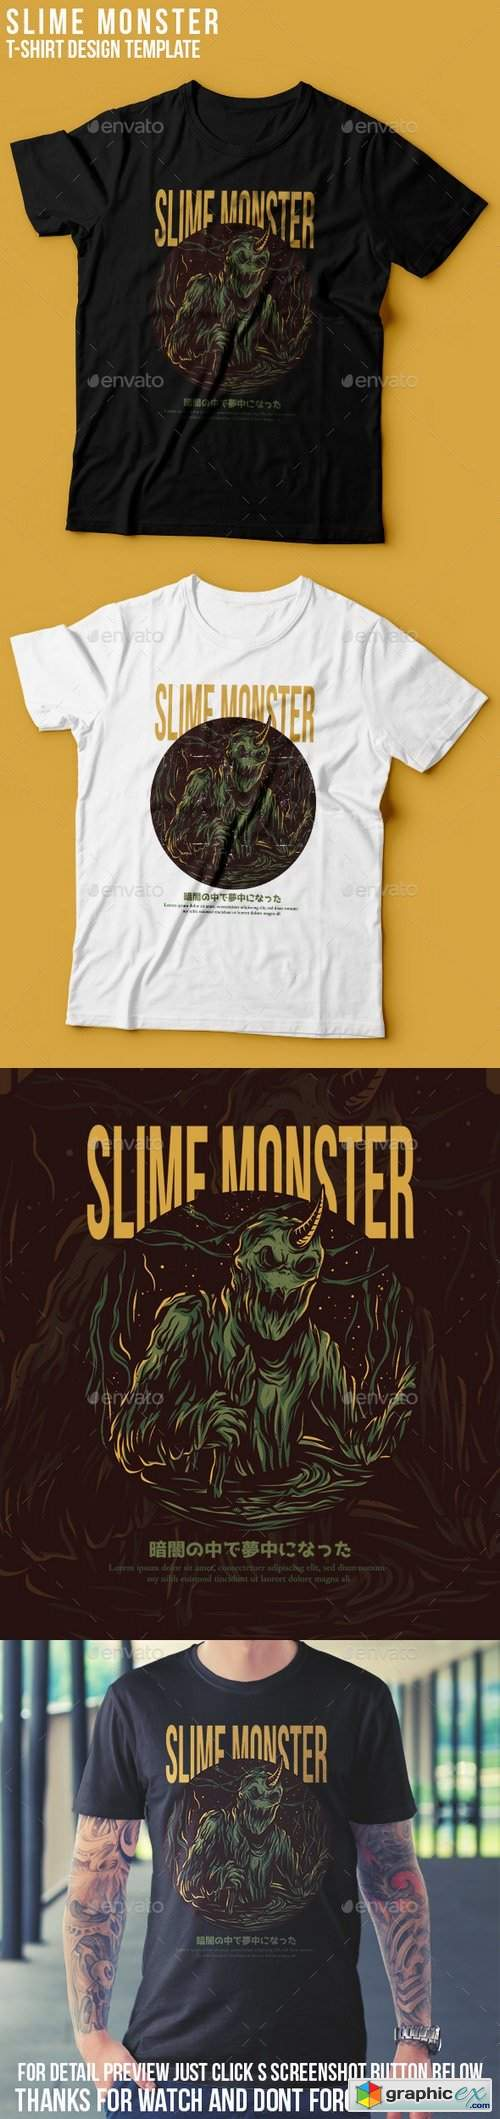 Slime Monster T-Shirt Design